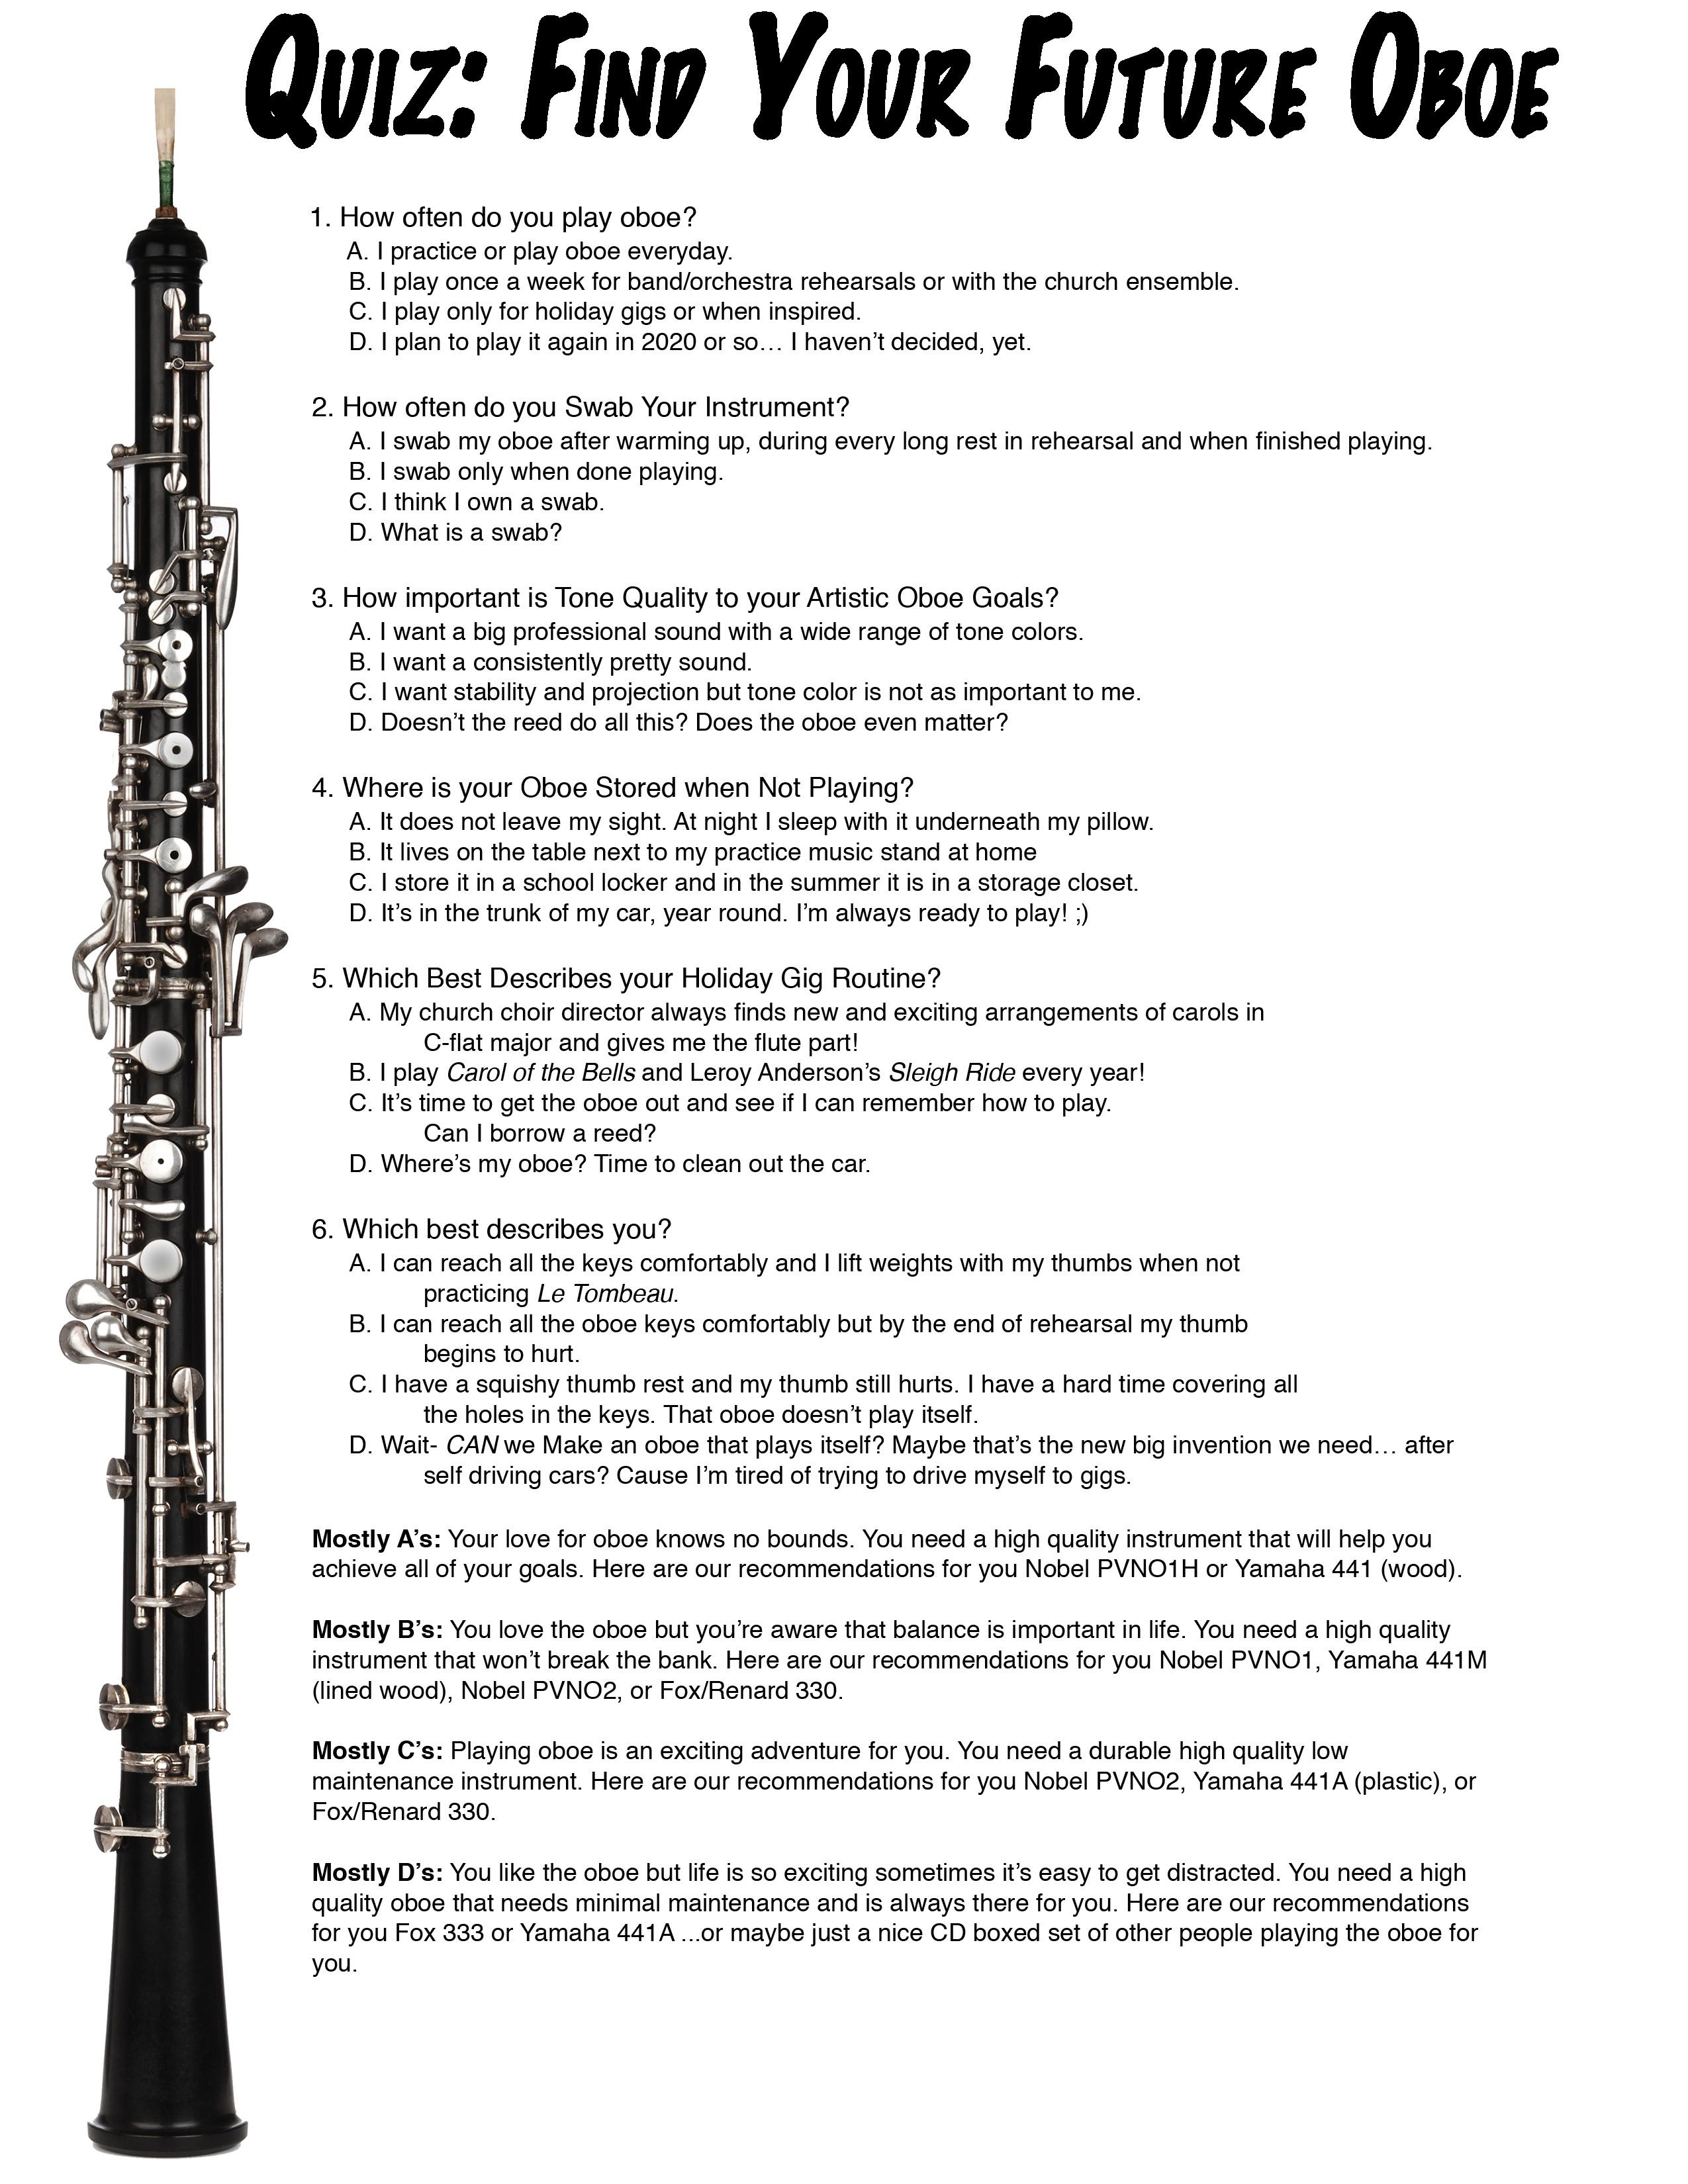 Finding an affordable oboe with guest erica howard